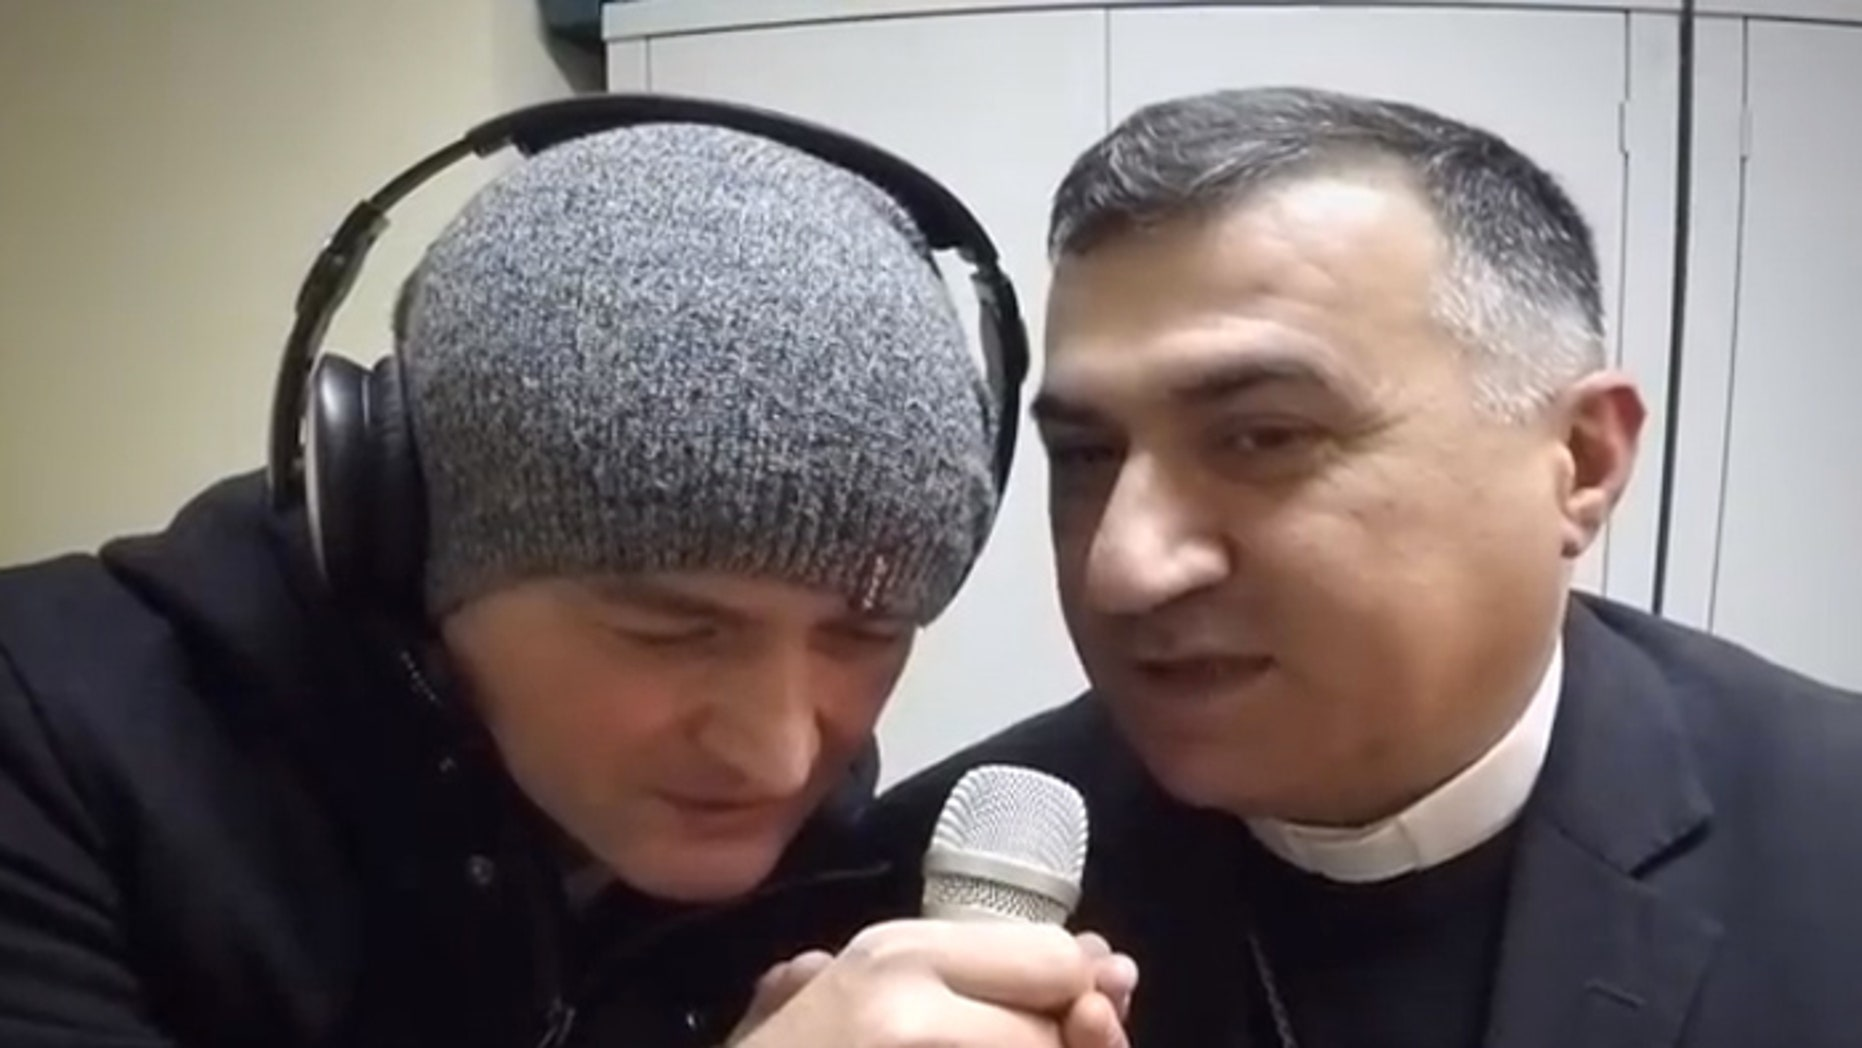 Hal St John of Ooberfuse and Archbishop Warda in the We Are One video . (Screengrab)